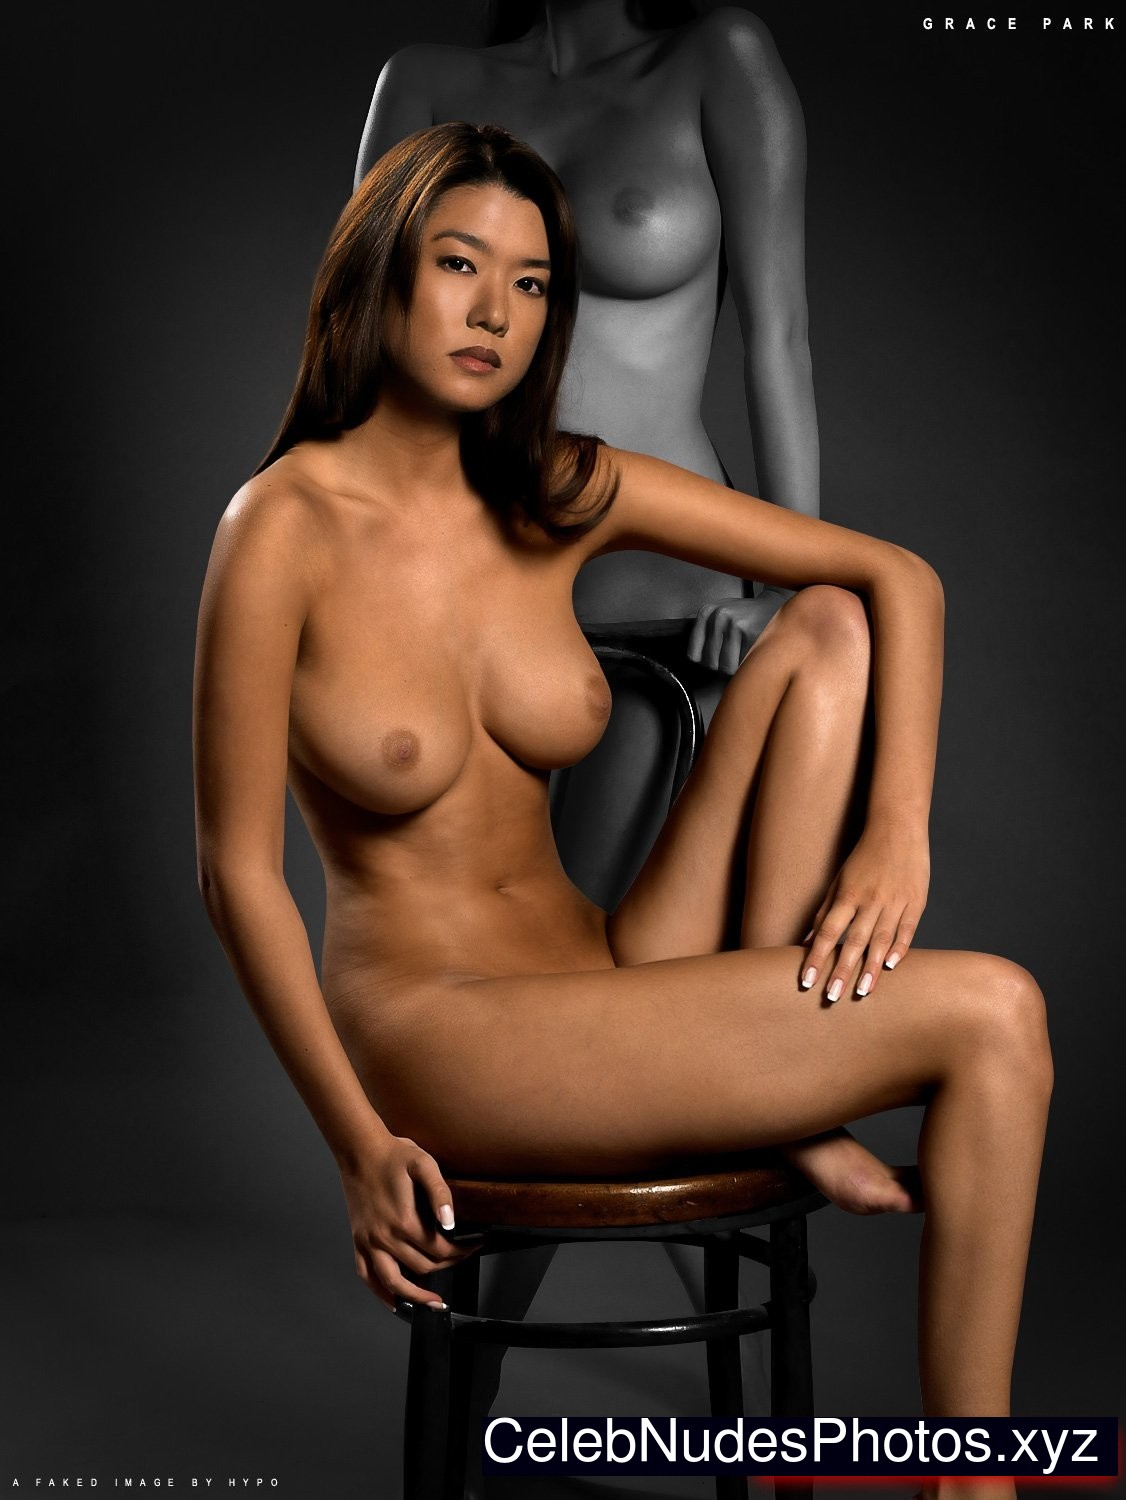 Gradually. grace park nude